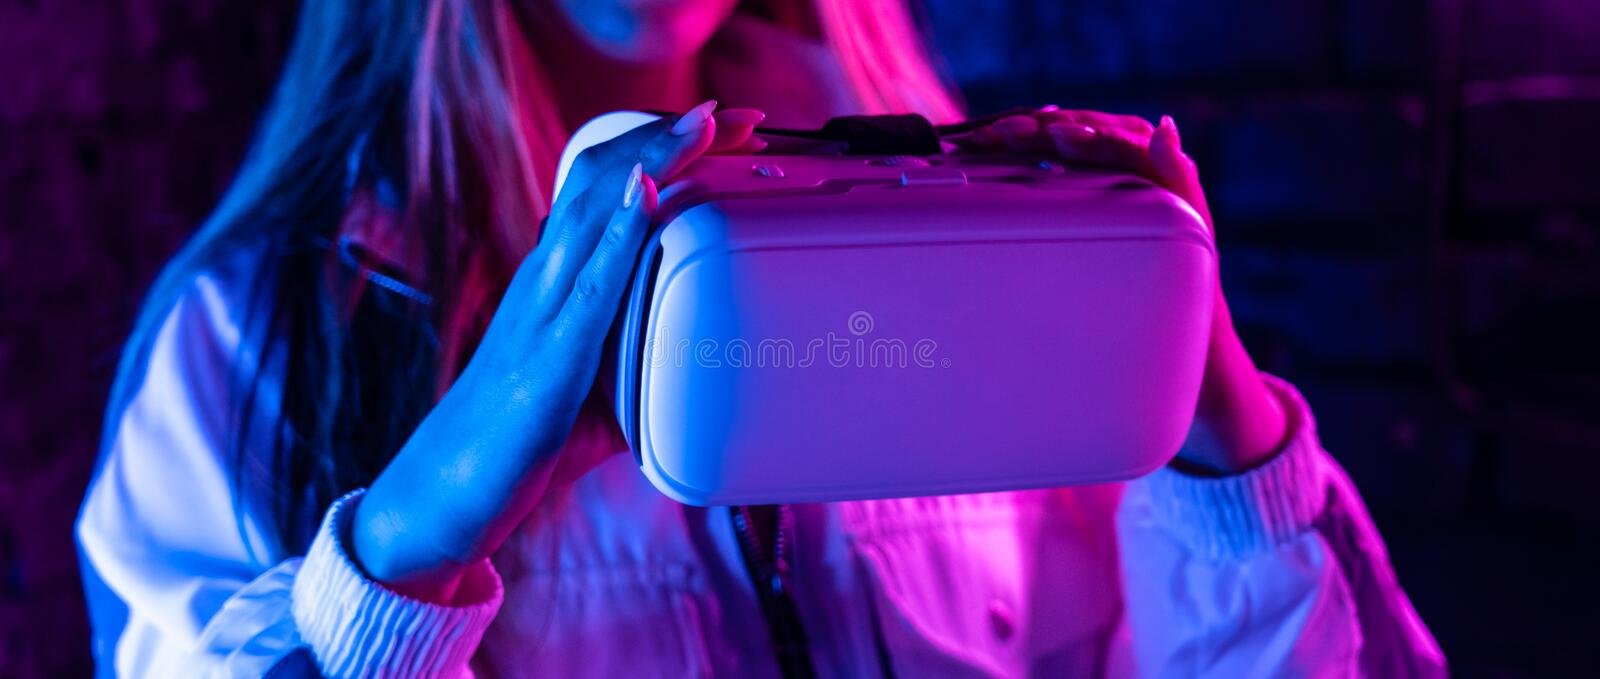 Girl gamer hold vr glasses goggles in futuristic purple neon light, banner royalty free stock photos